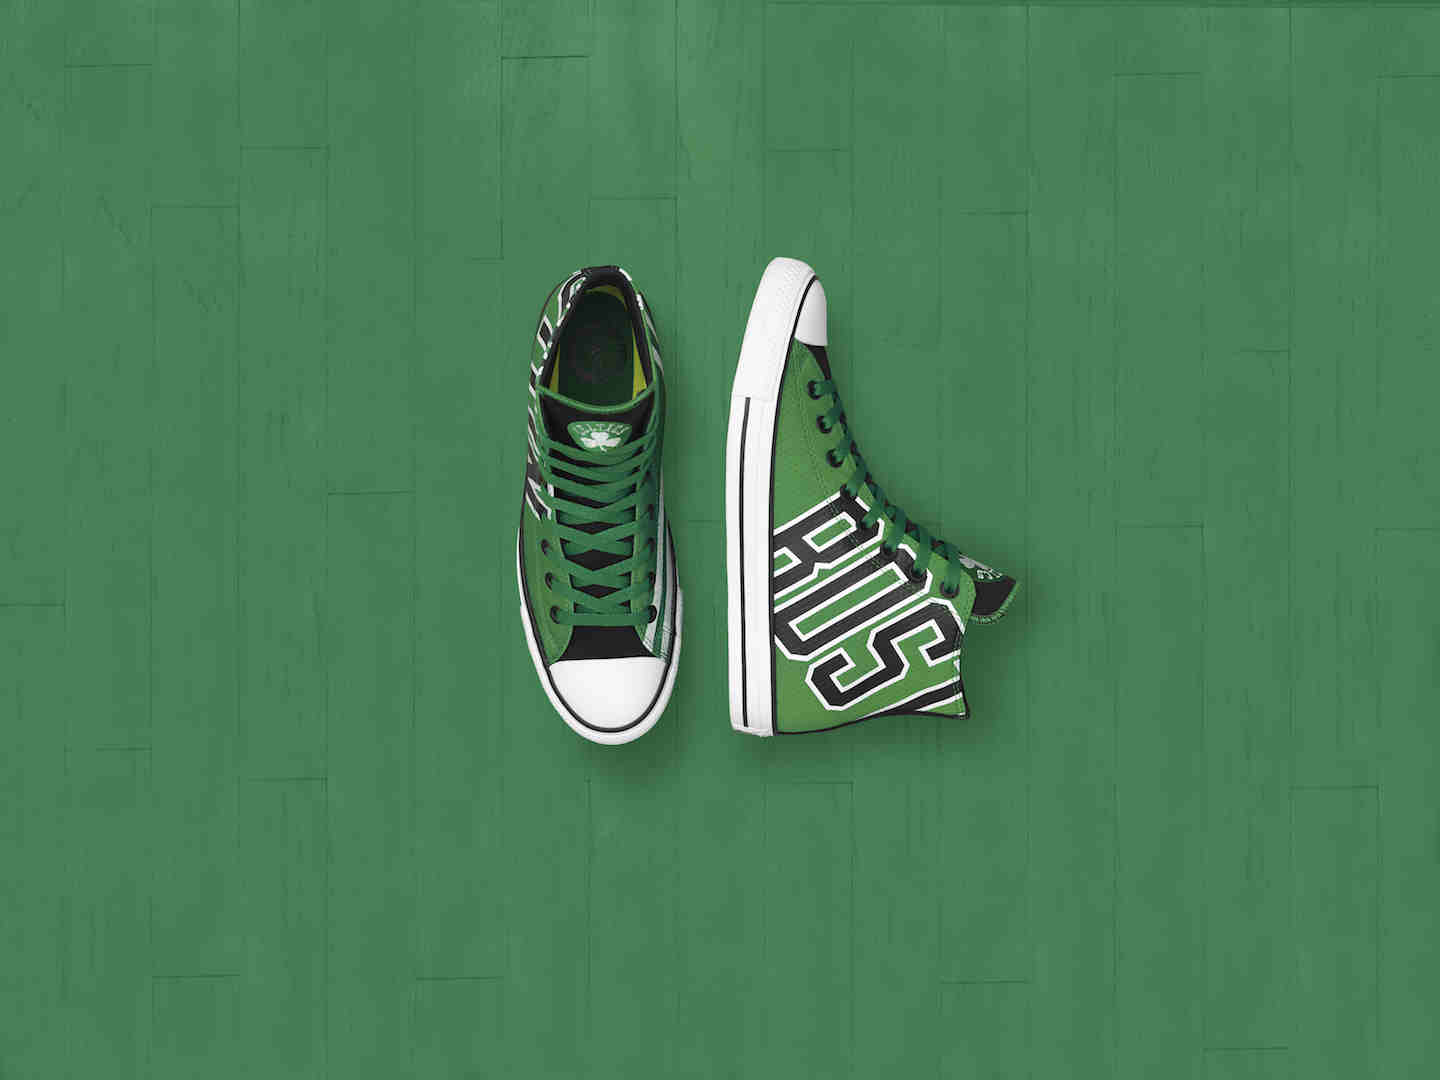 8719262f2d9a CONVERSE INTRODUCES NBA CHUCK TAYLOR ALL STAR COLLECTION - Ning4u ...